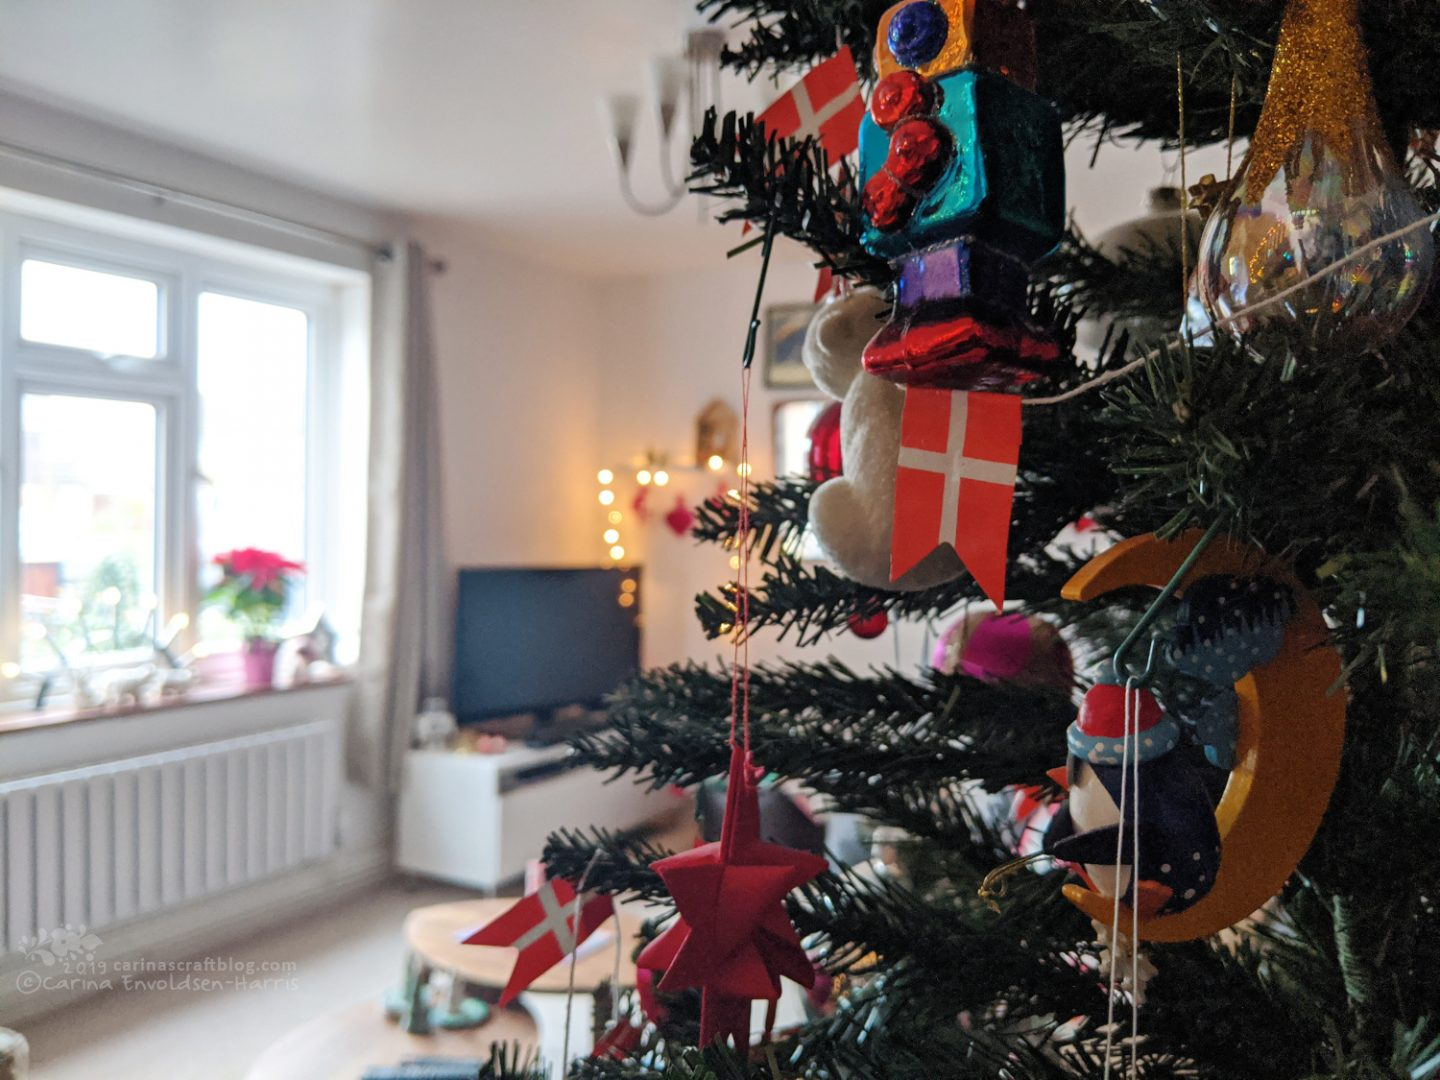 Decorated Christmas tree in half of the picture, in the background a tv and a window,